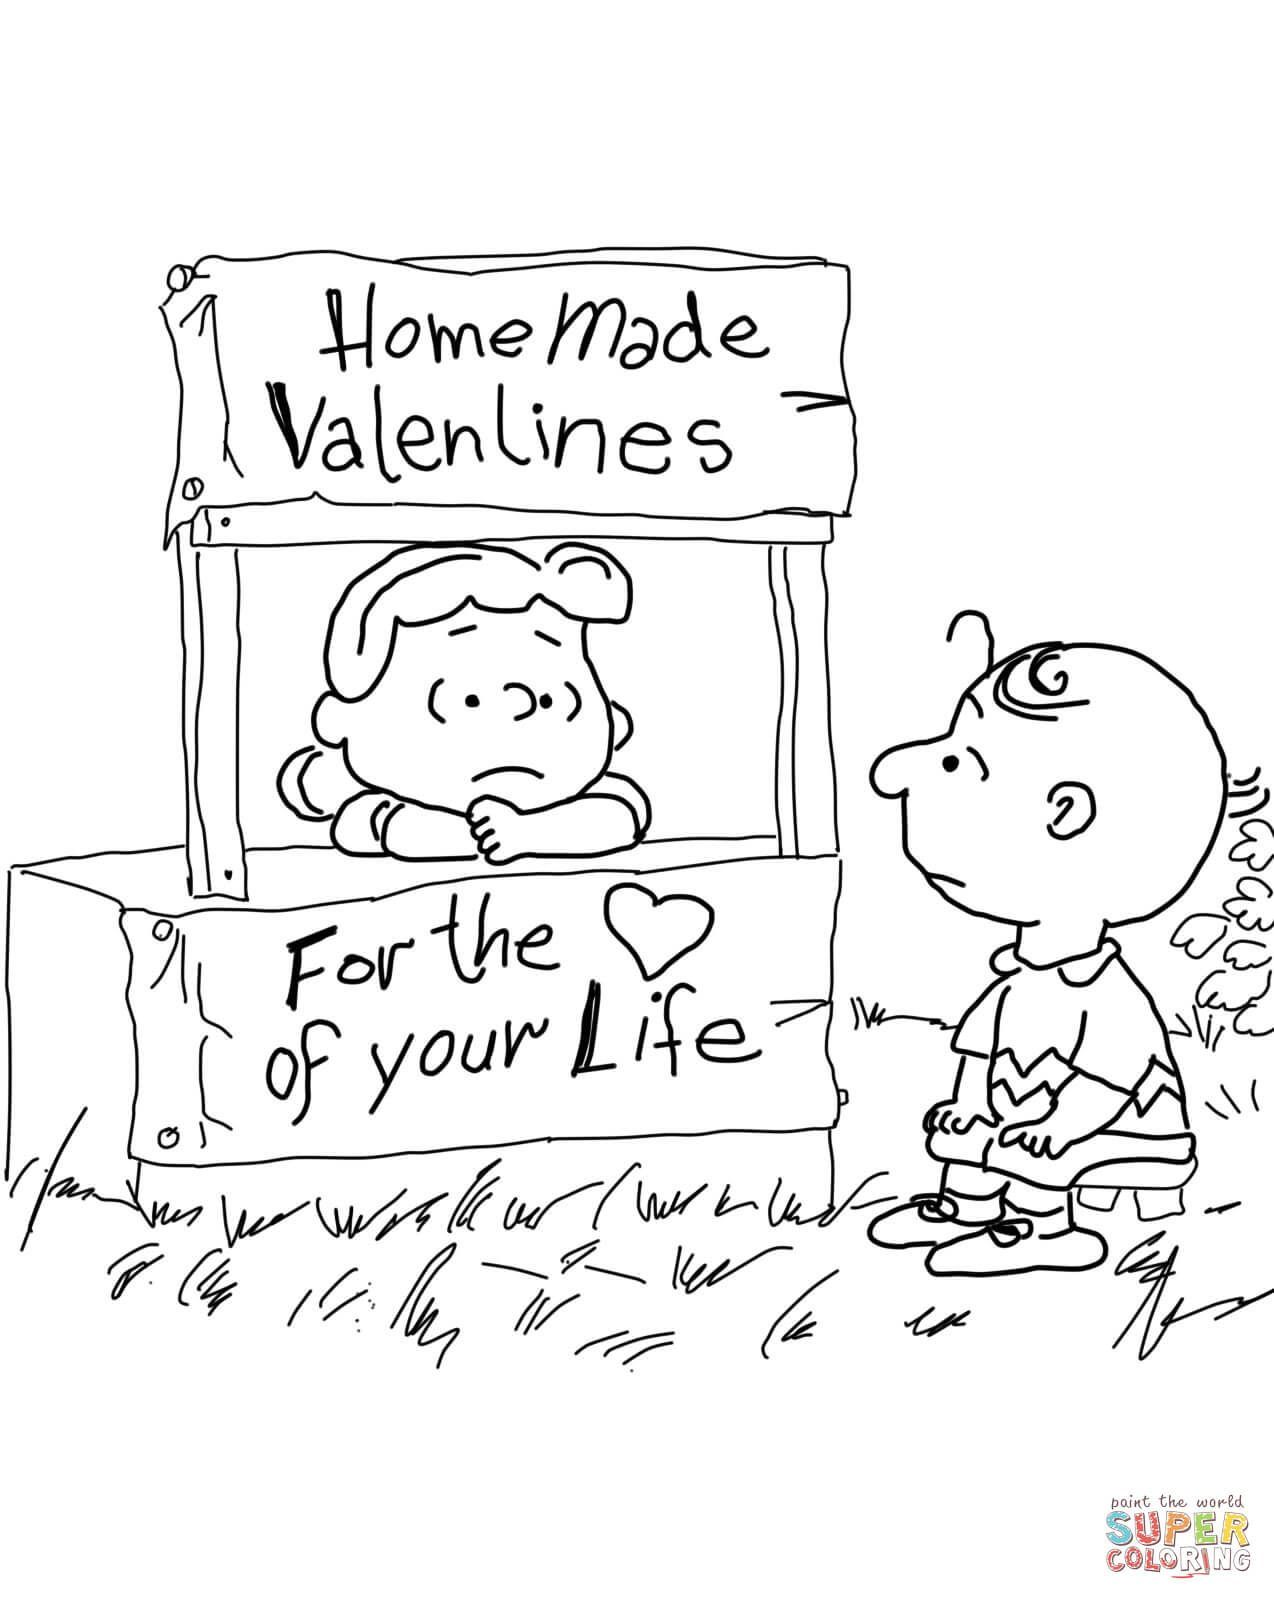 Peanuts Coloring Pages Peanuts Valentines Day Coloring ...